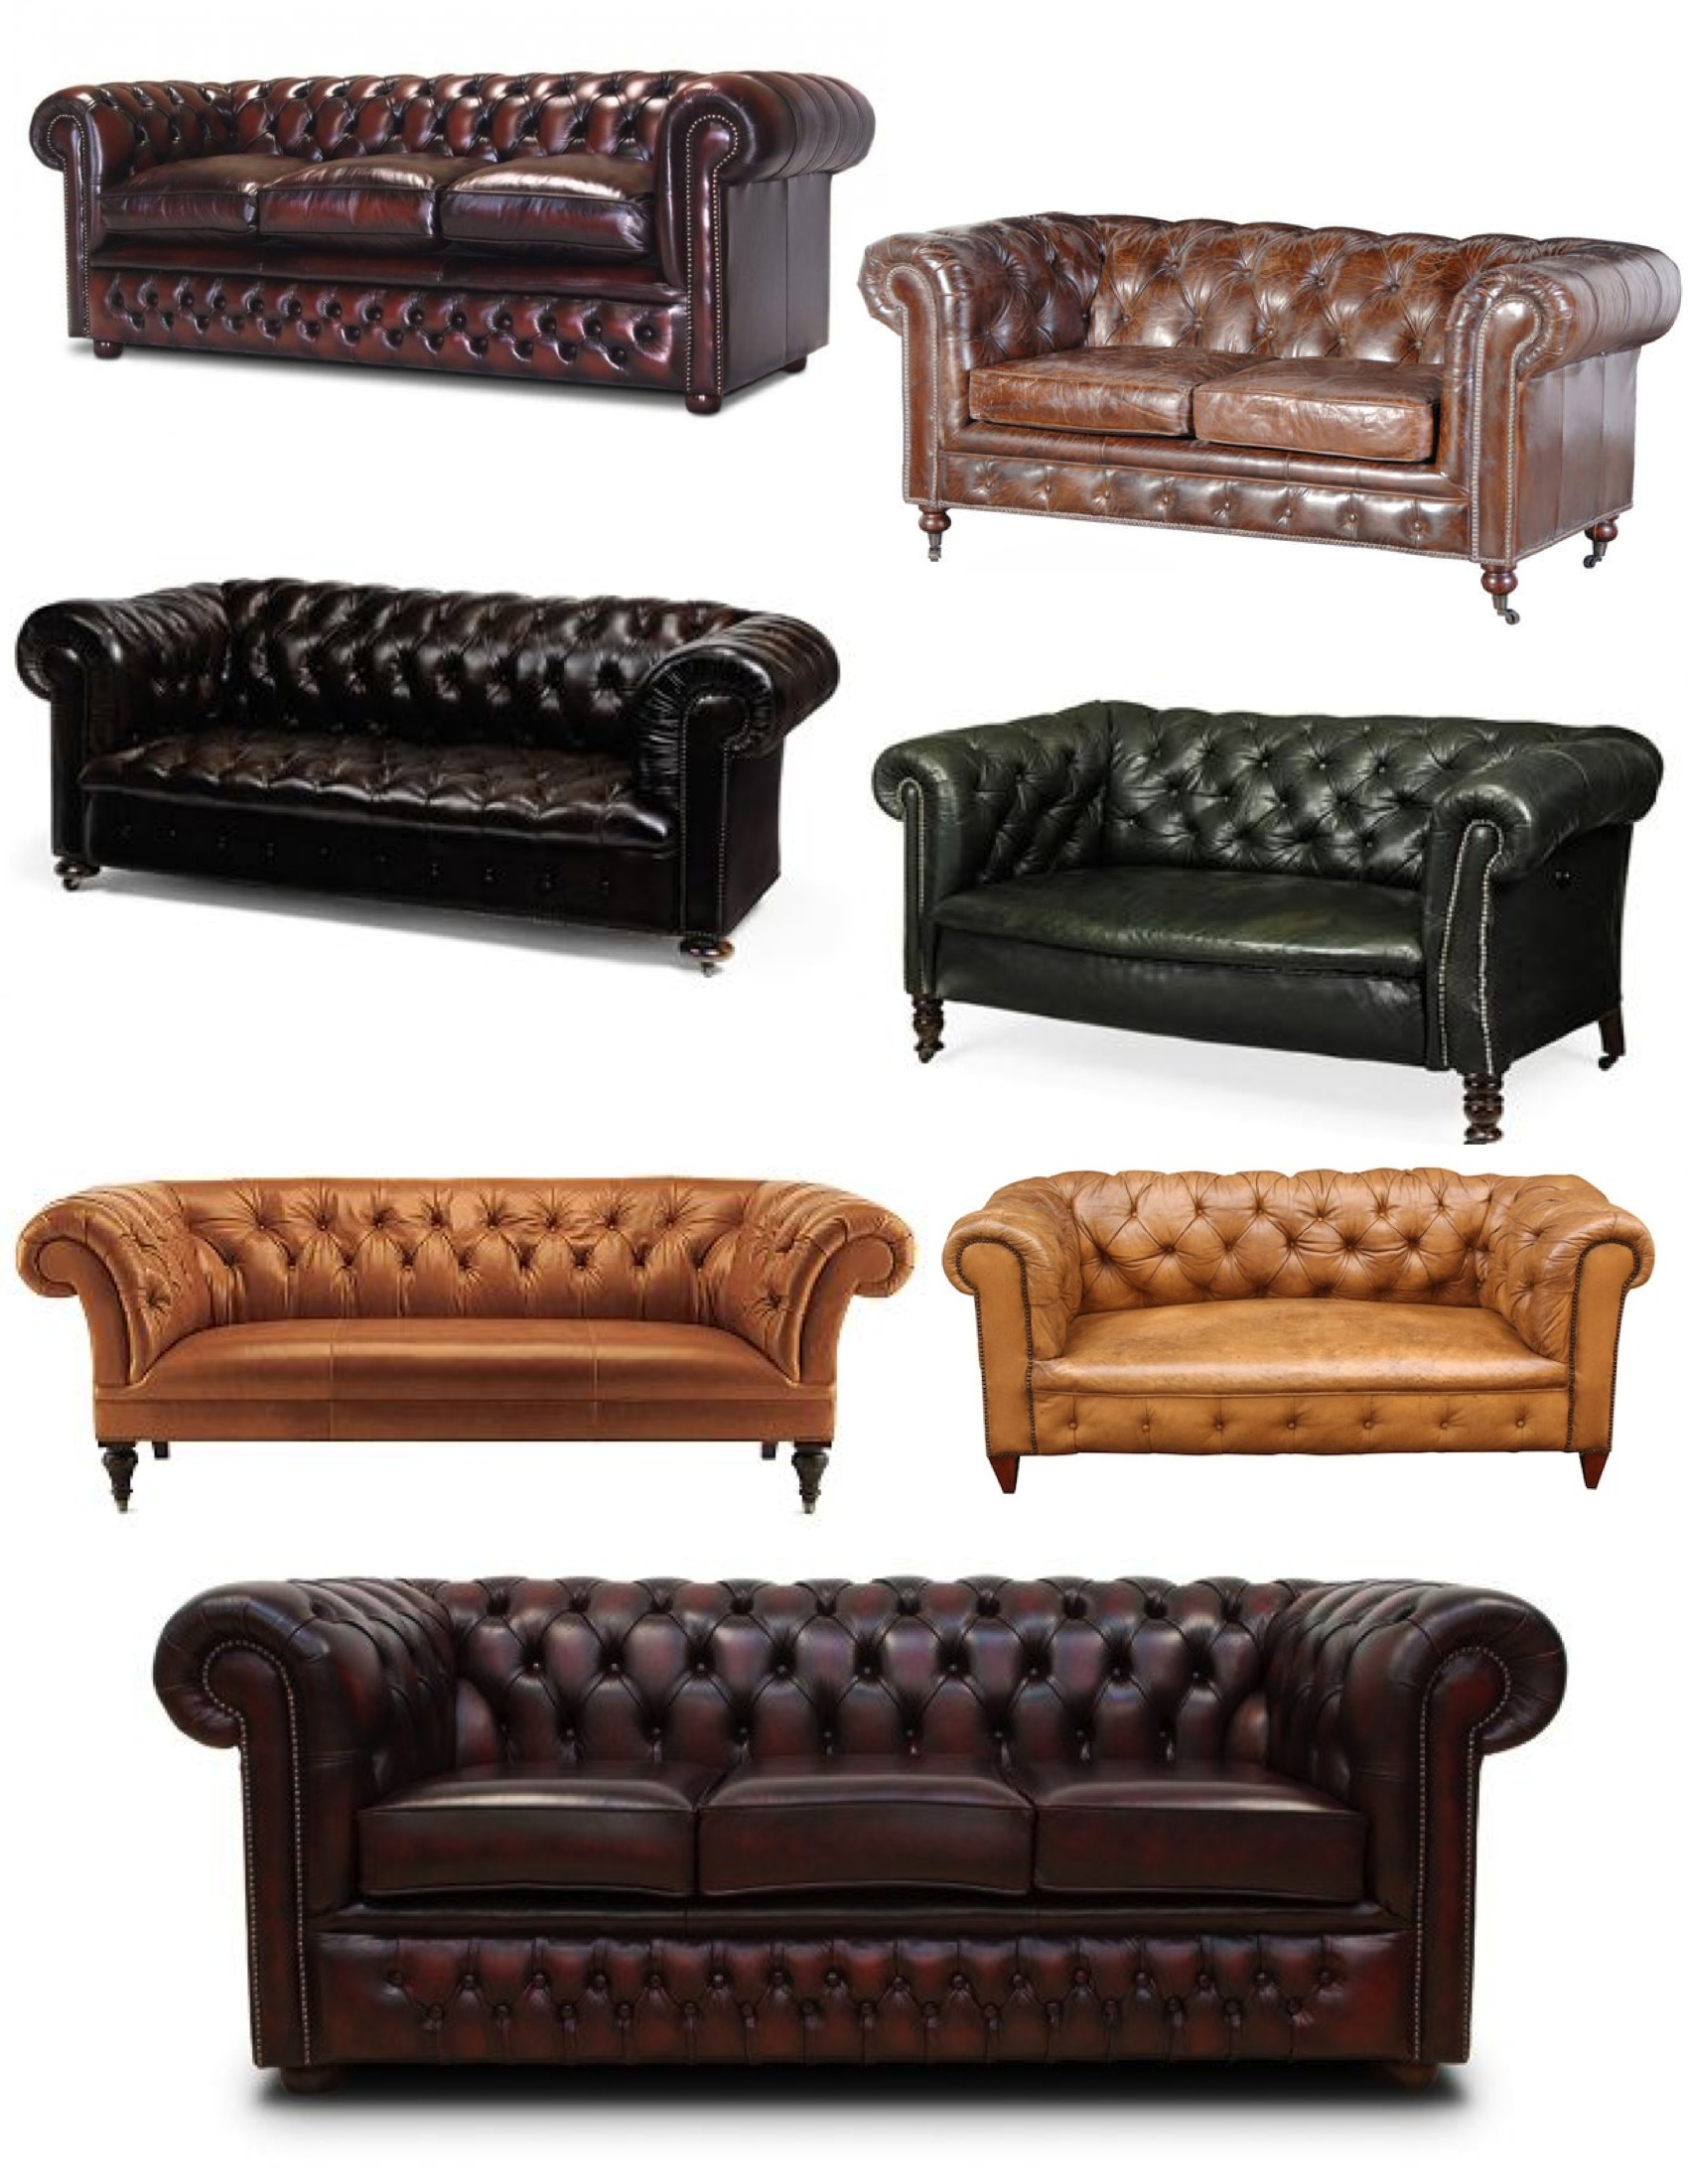 legendary design style the chesterfield couch house appeal. Black Bedroom Furniture Sets. Home Design Ideas